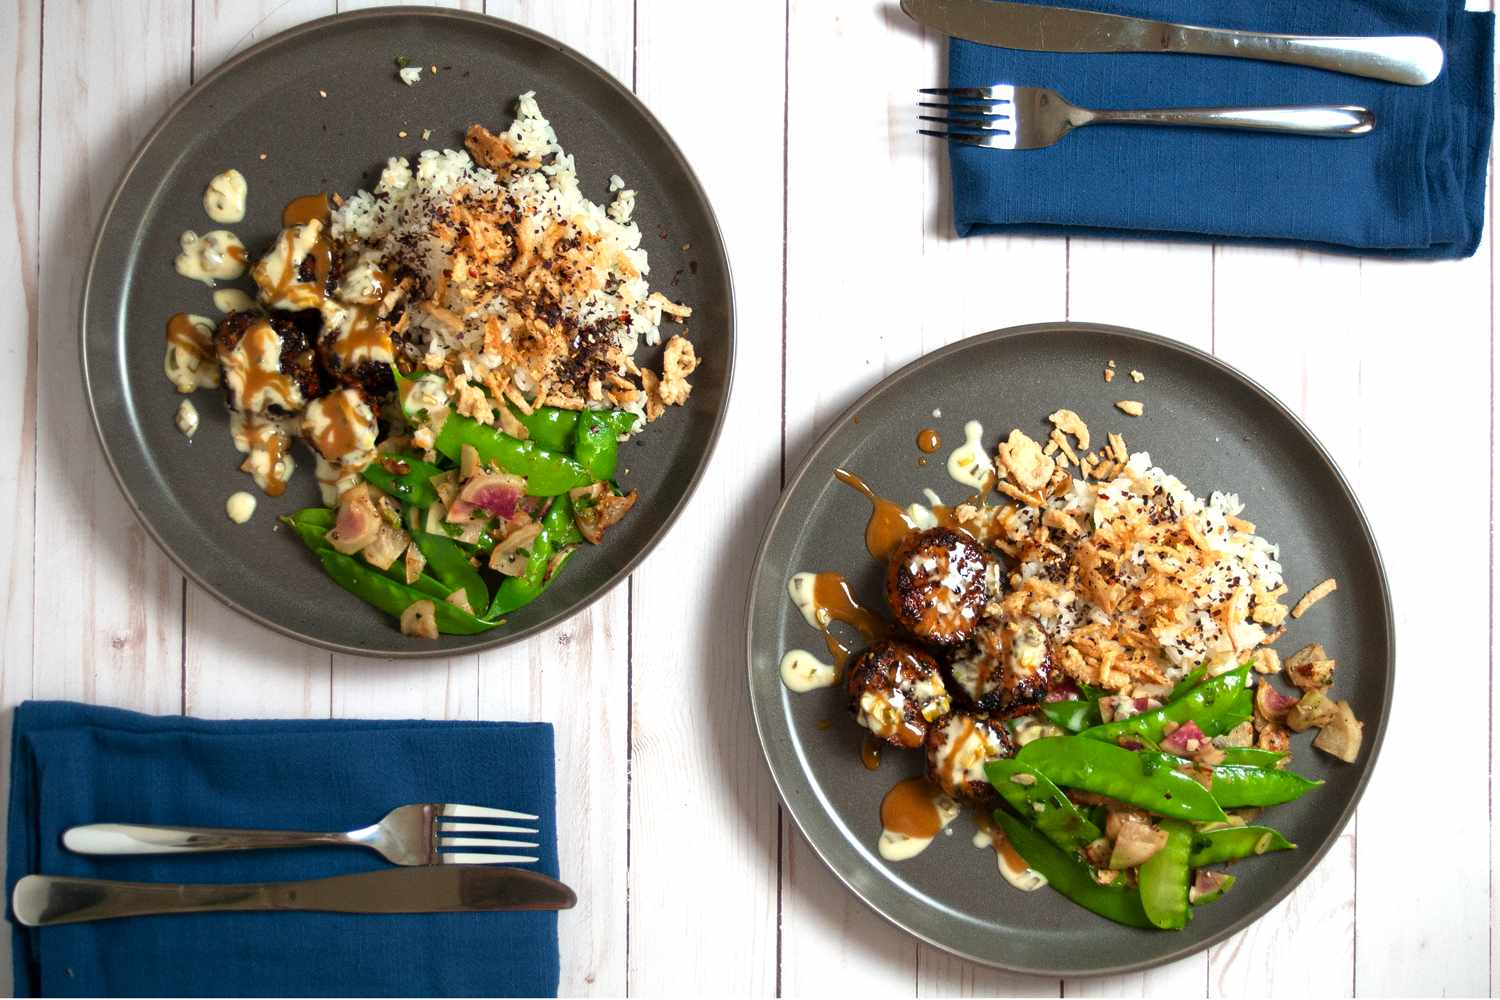 Blue Apron two meals on plates